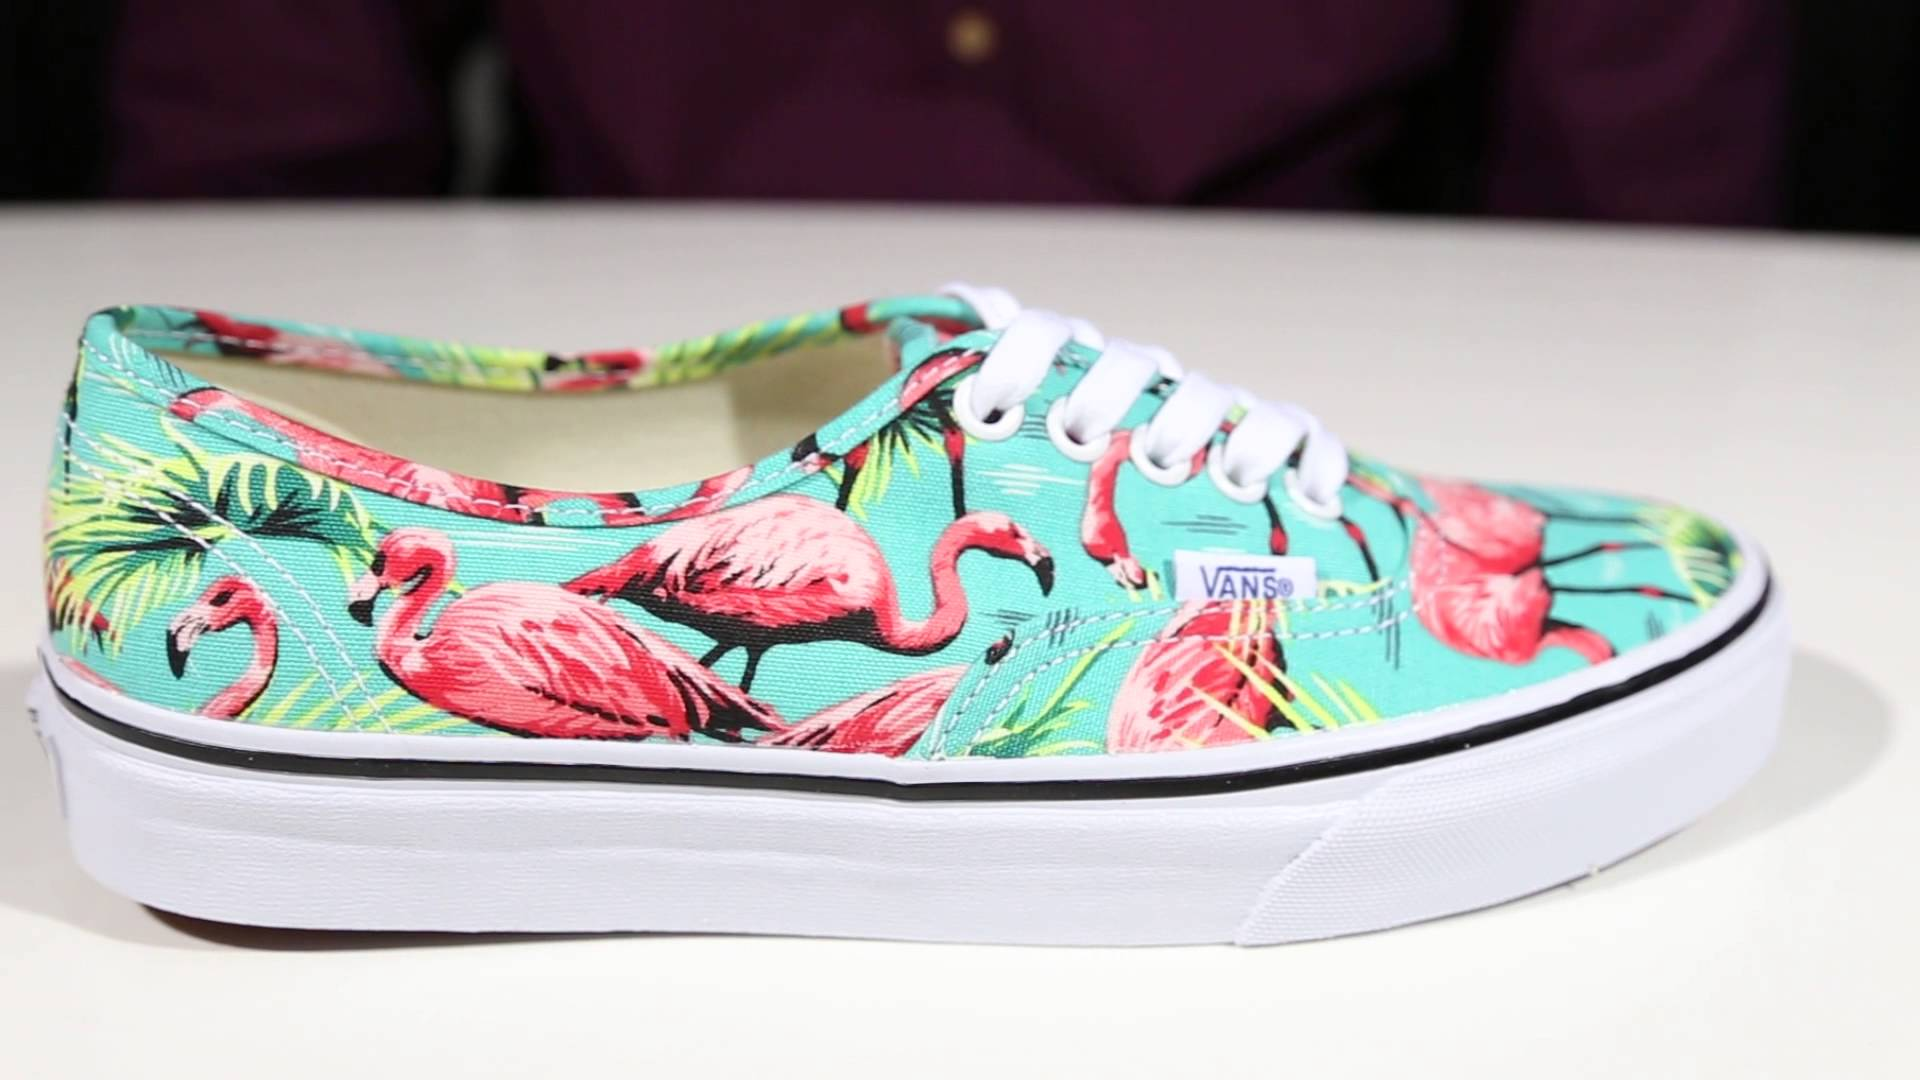 Flamingo Vans | Vans Sandals for Men | Cool Mens Vans